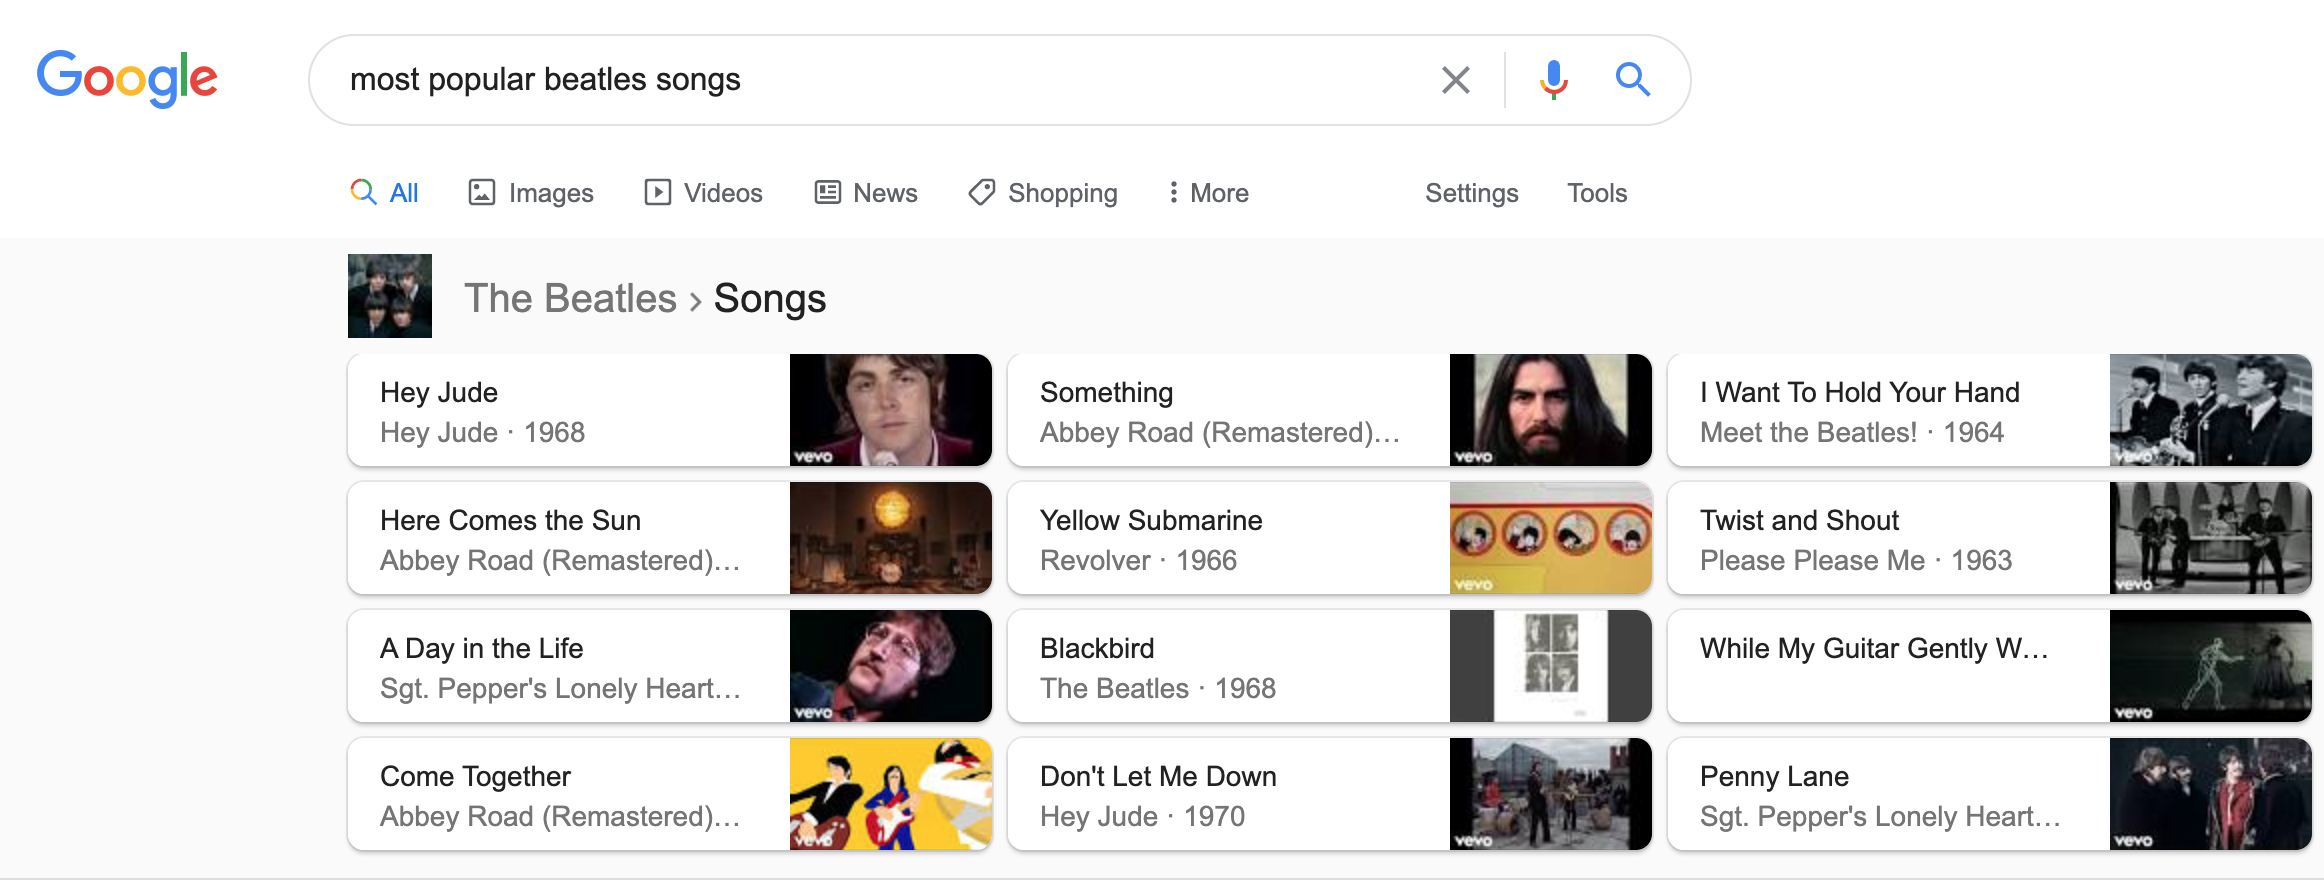 Rich cards for songs in Google SERPs